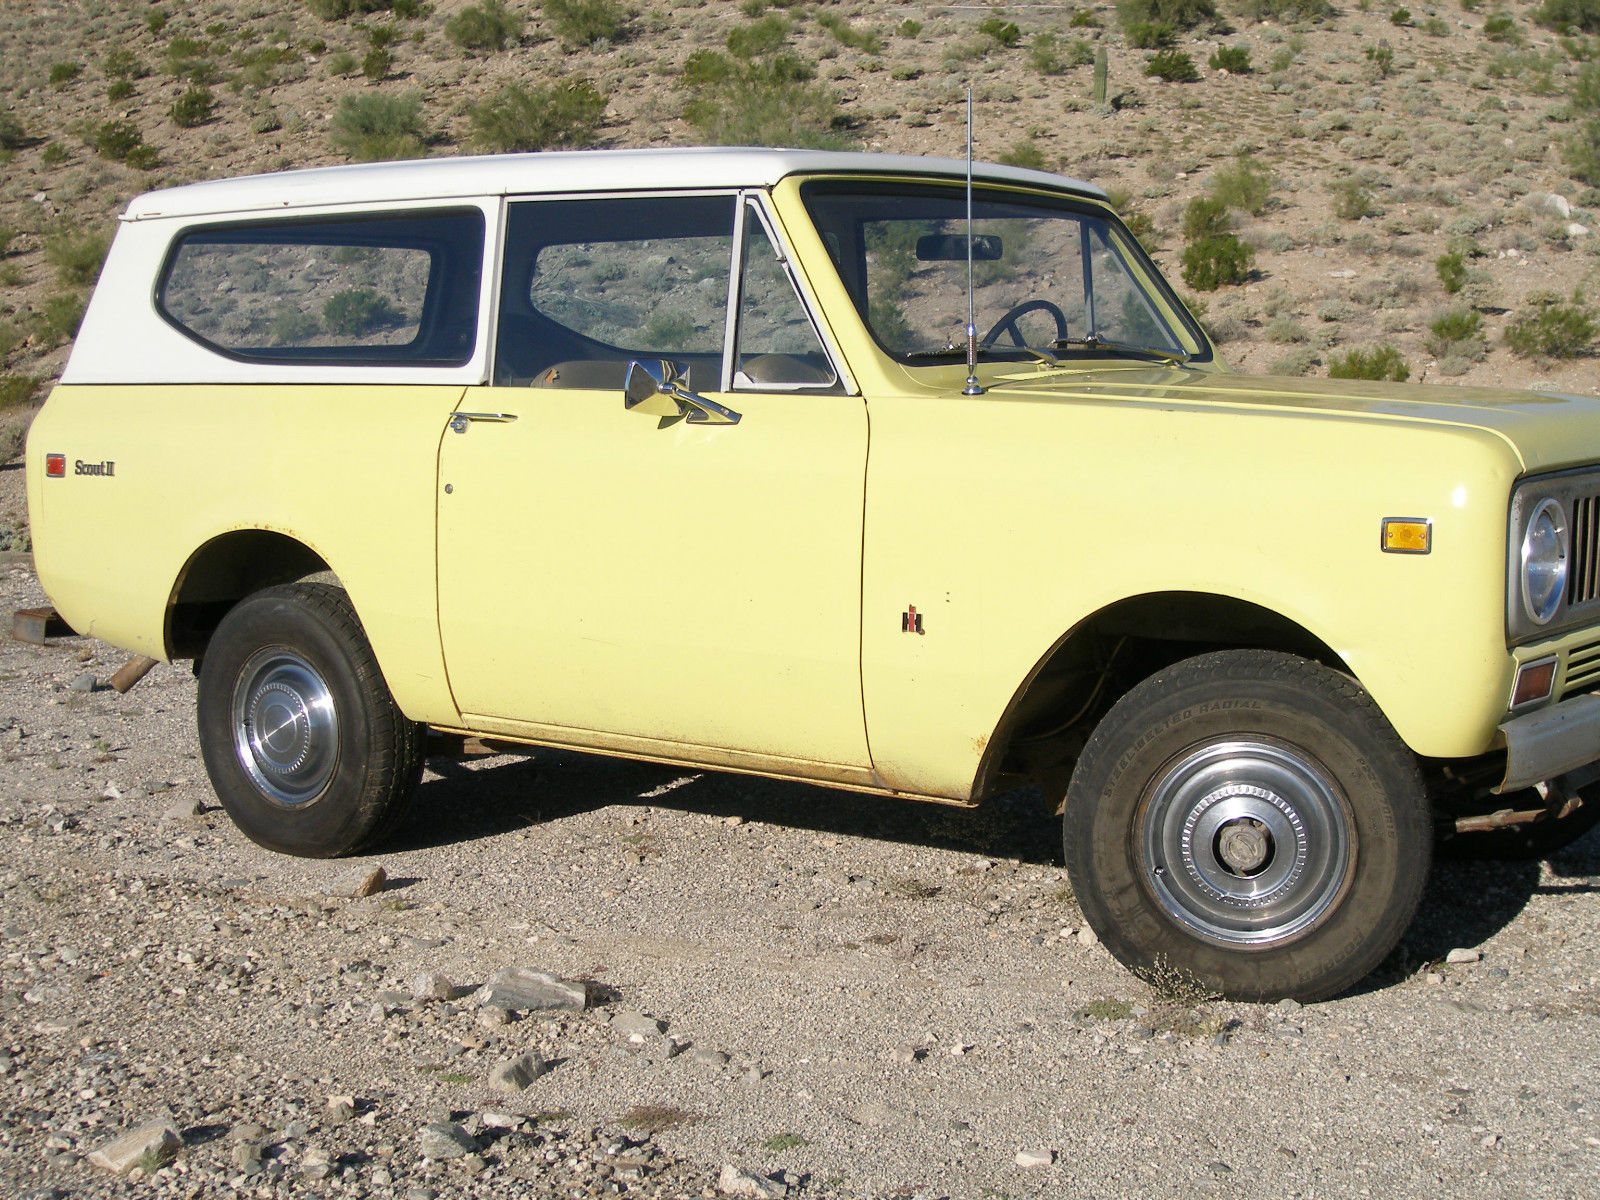 1974 international scout ii convertible v8 low mileage survivor 10 sm car fuse box location fuse cross reference chart wiring diagram gem car fuse box at honlapkeszites.co